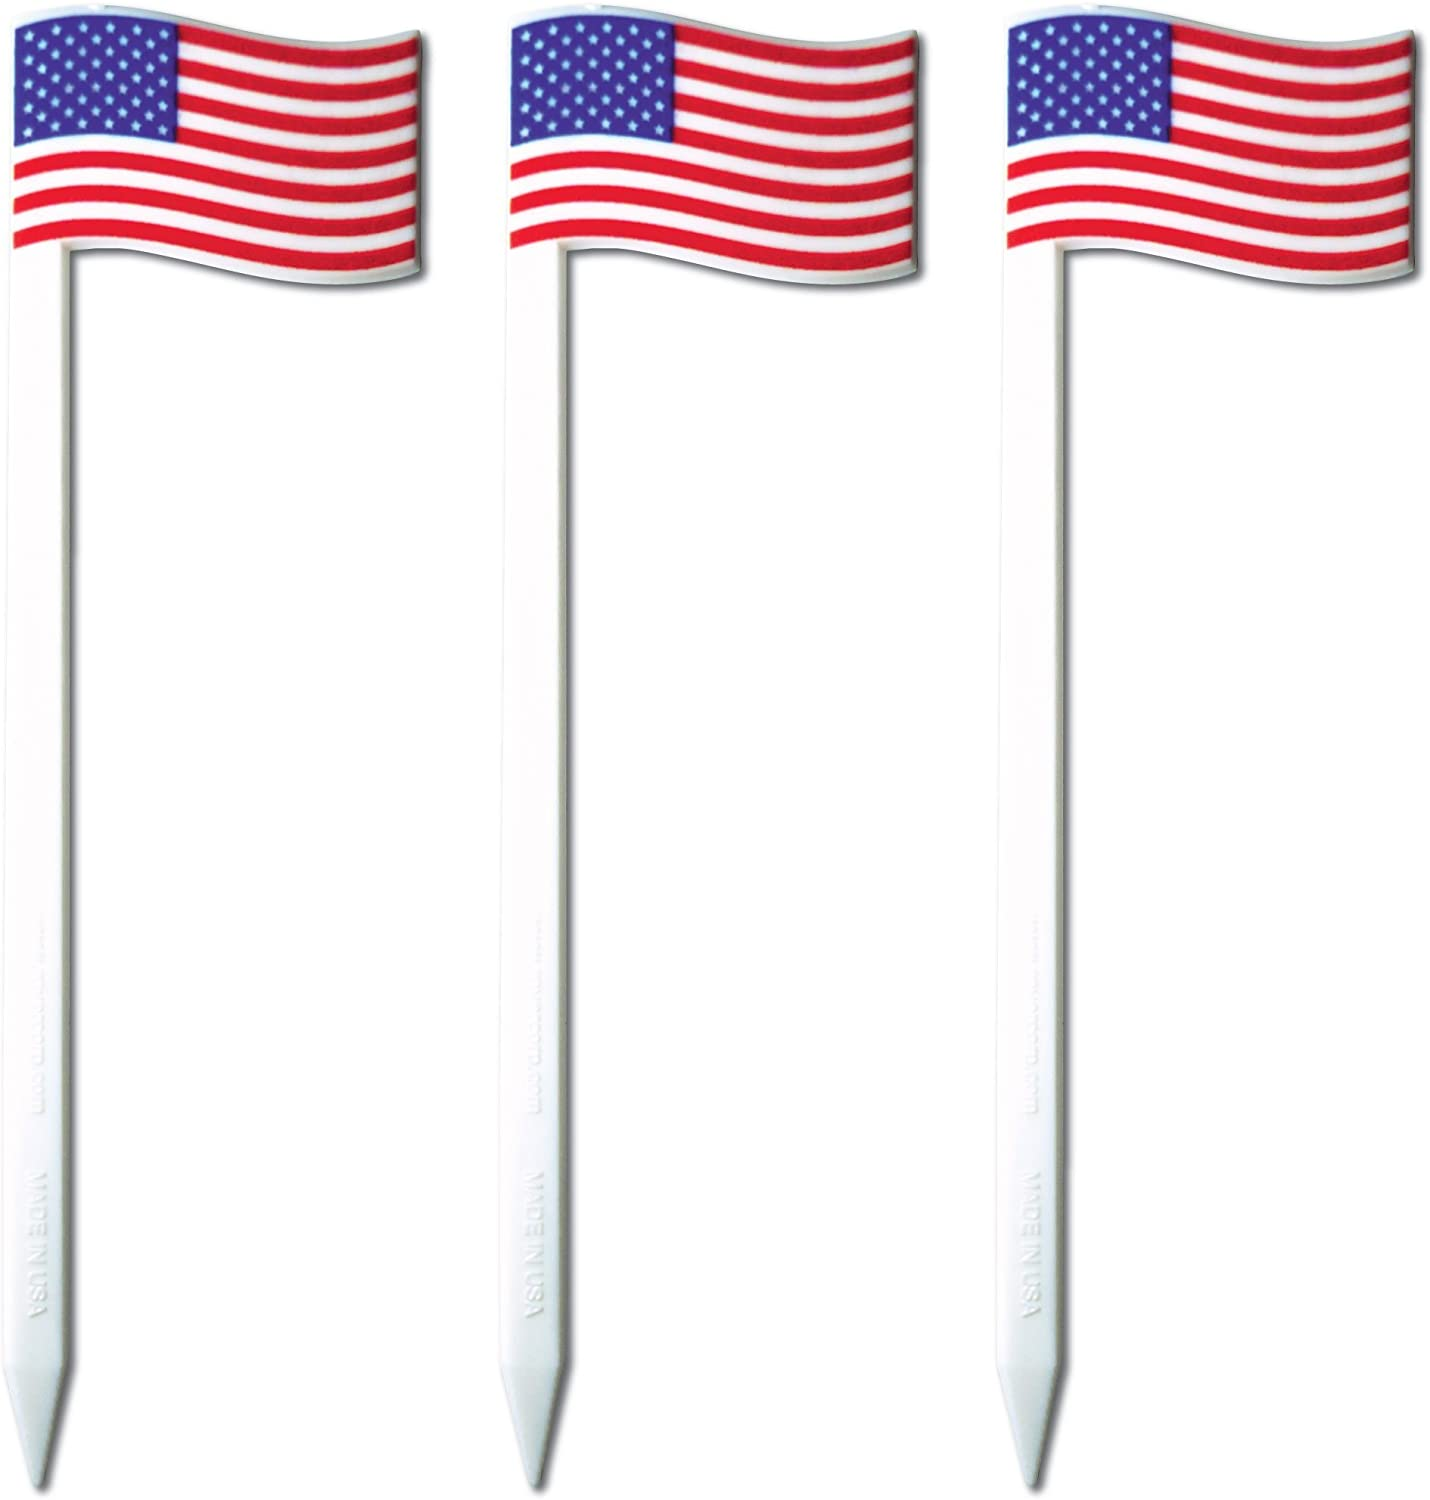 Royer 4.5 American Flag Cocktail /& Sandwich Picks//Skewers Set of 24 Made In USA